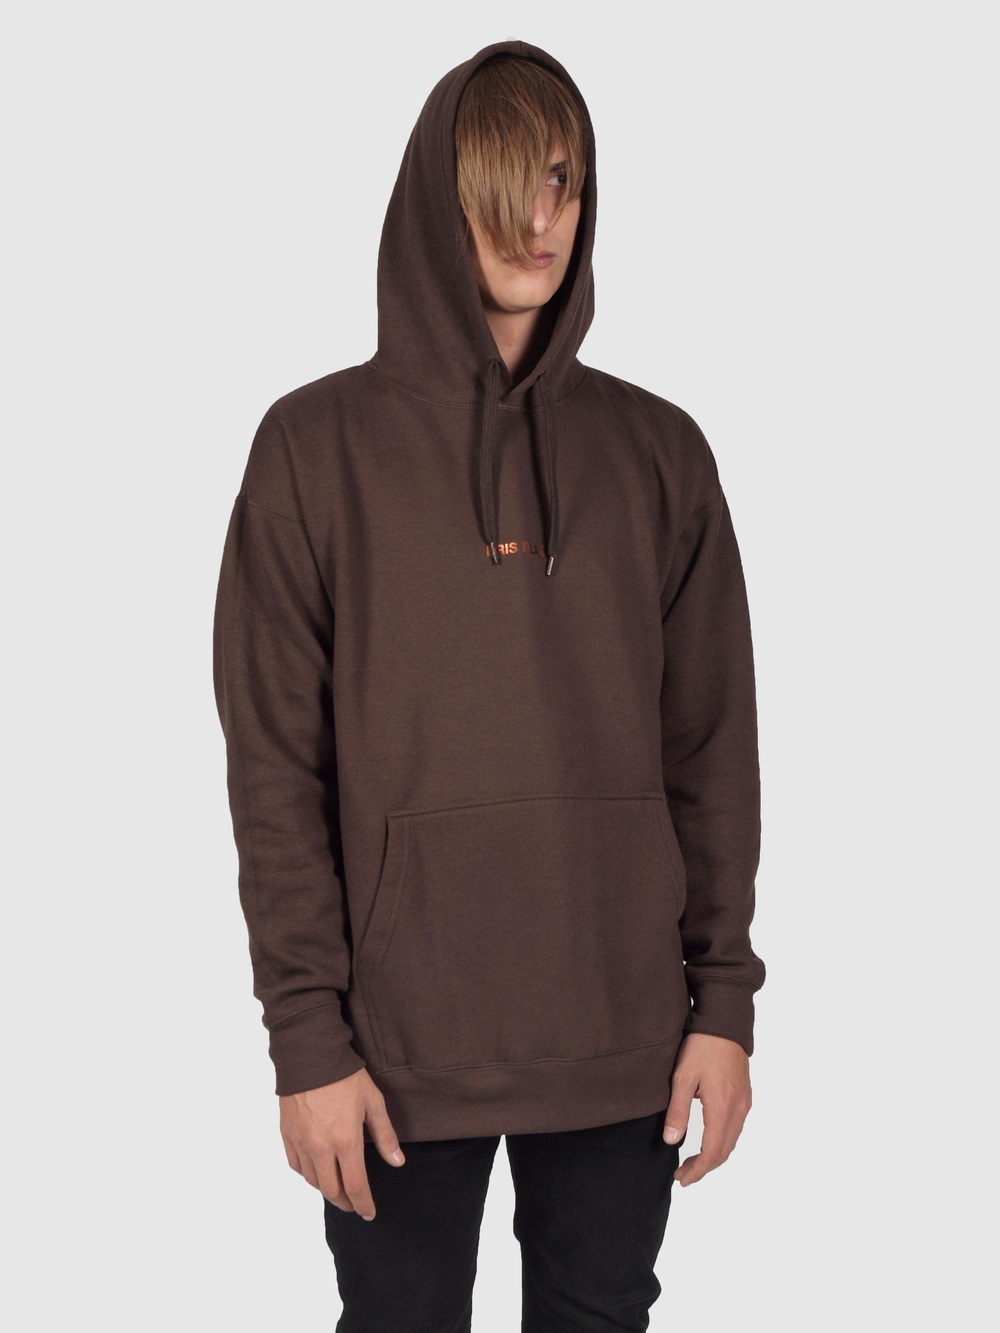 ERIS BLACK - EARTH BROWN HOODIE